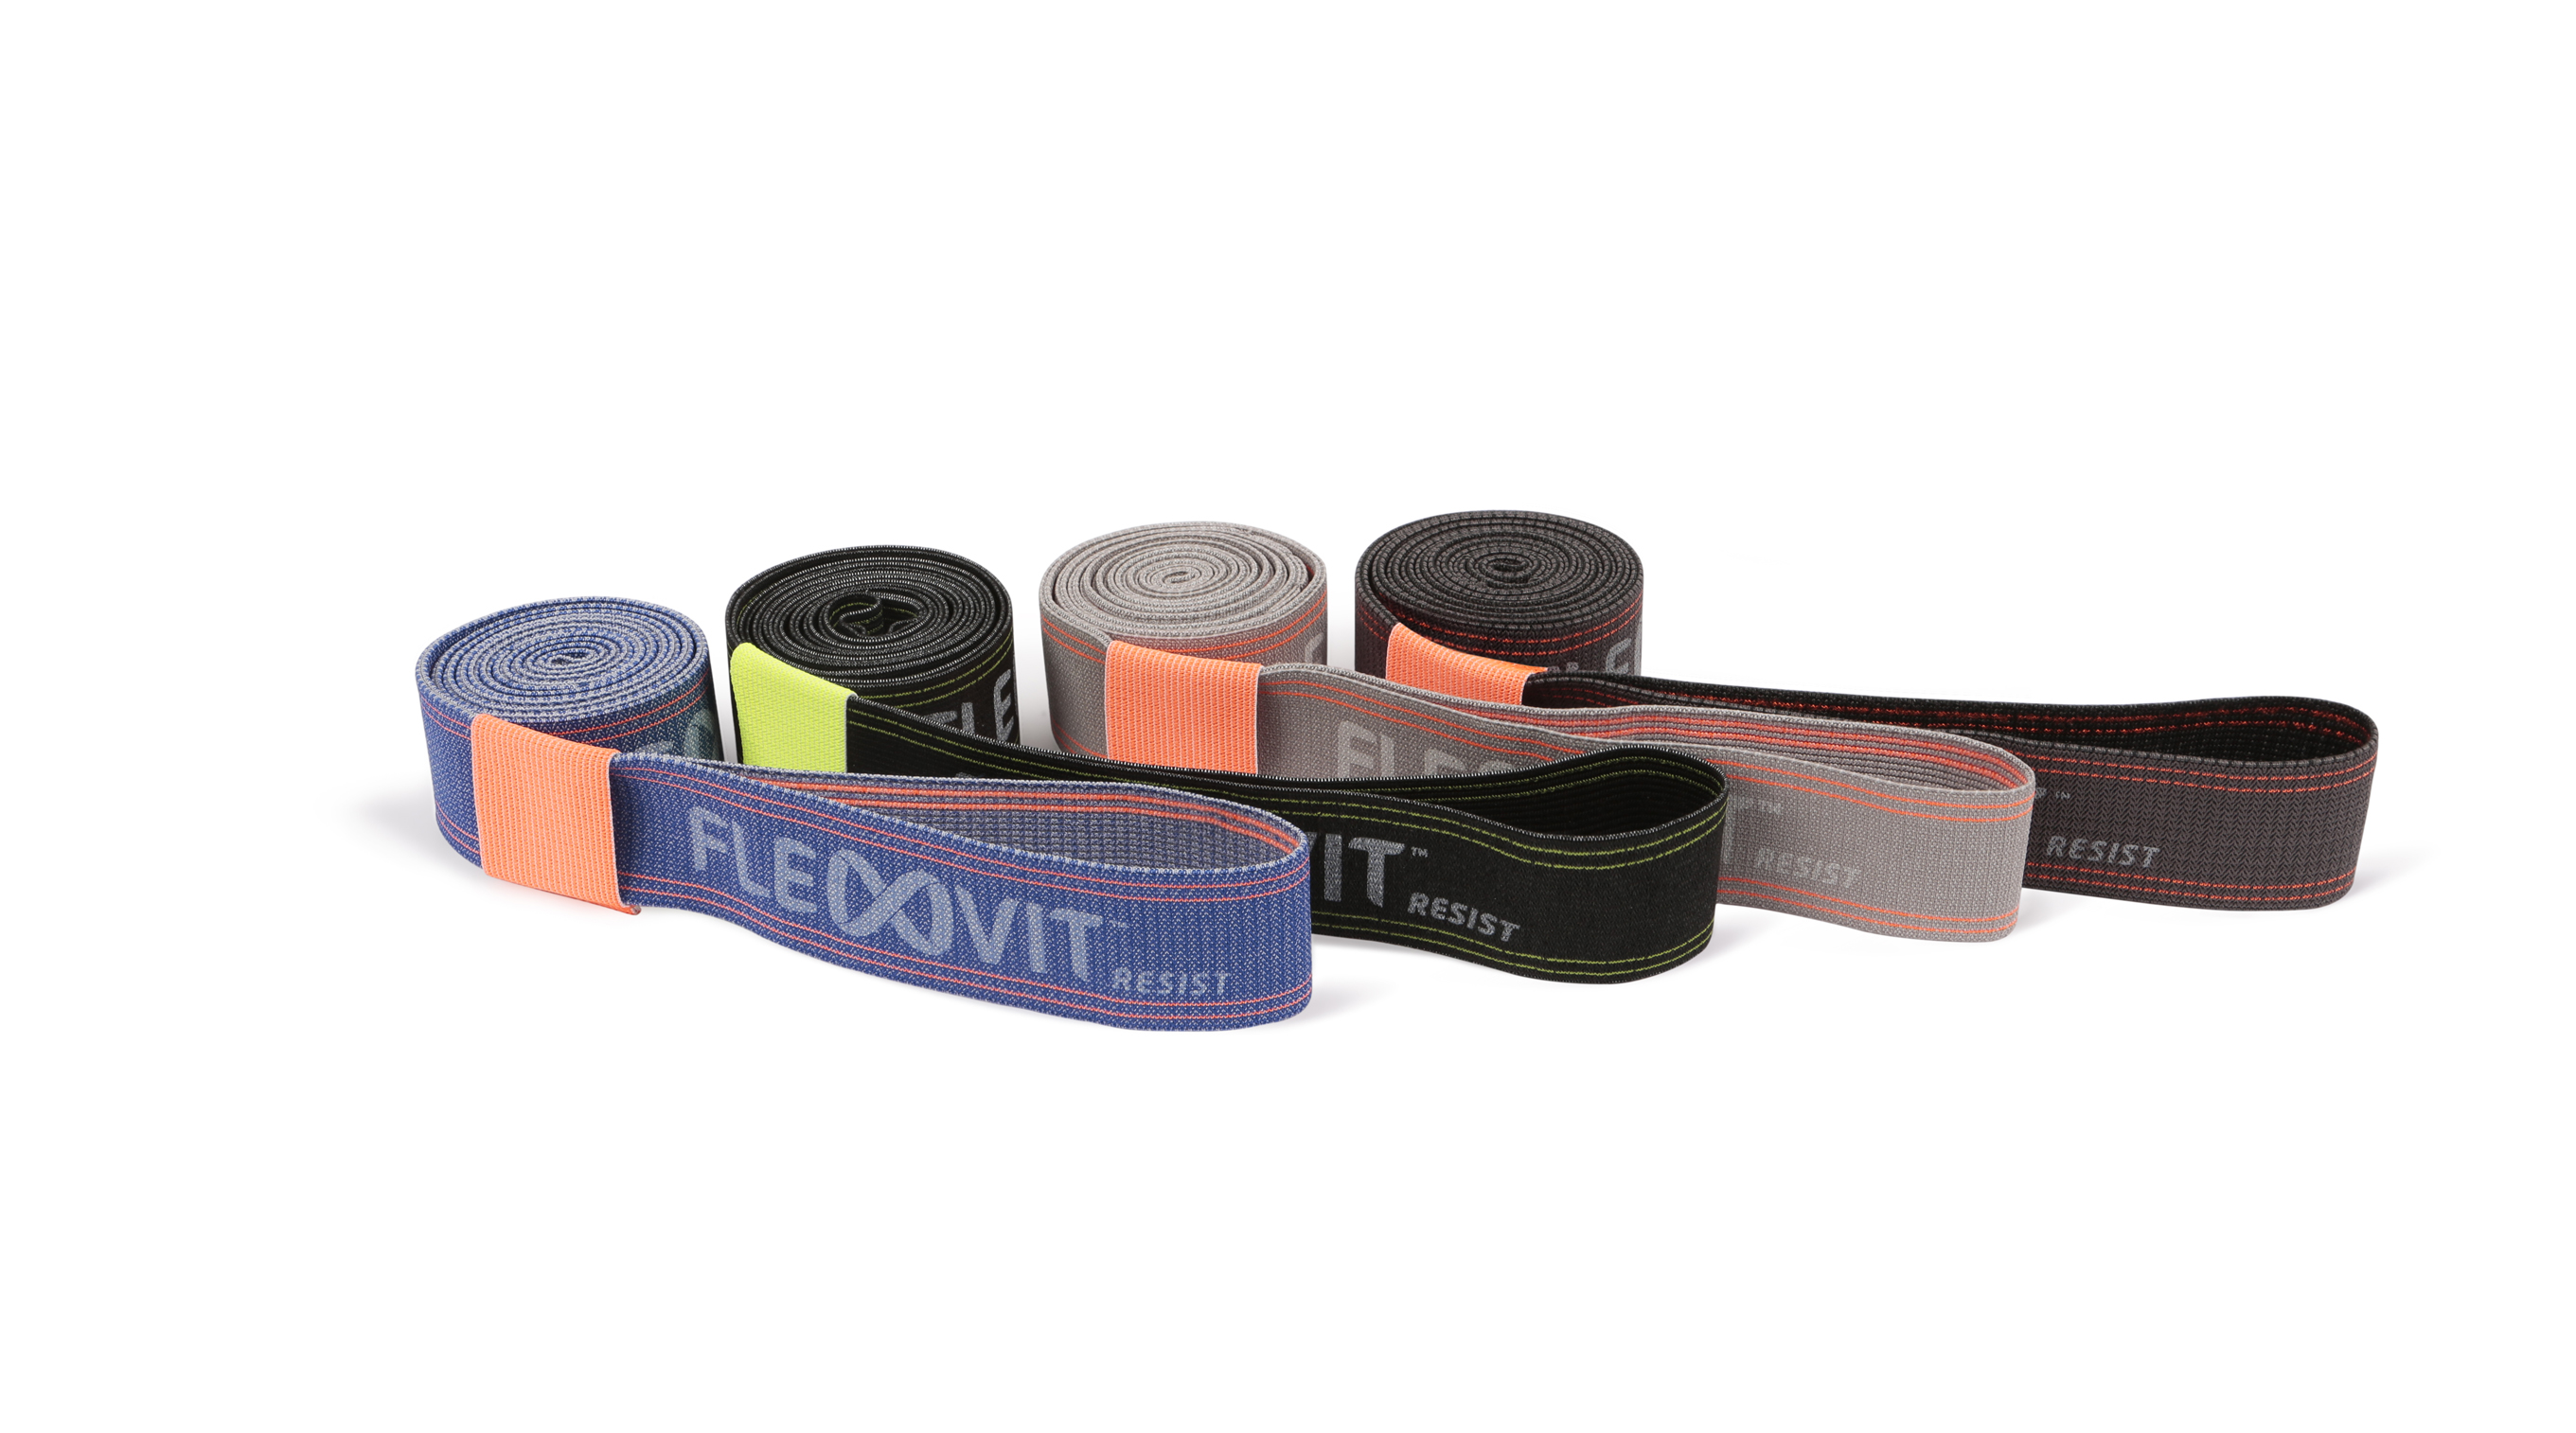 FLEXVIT Resist Band - 4er Set